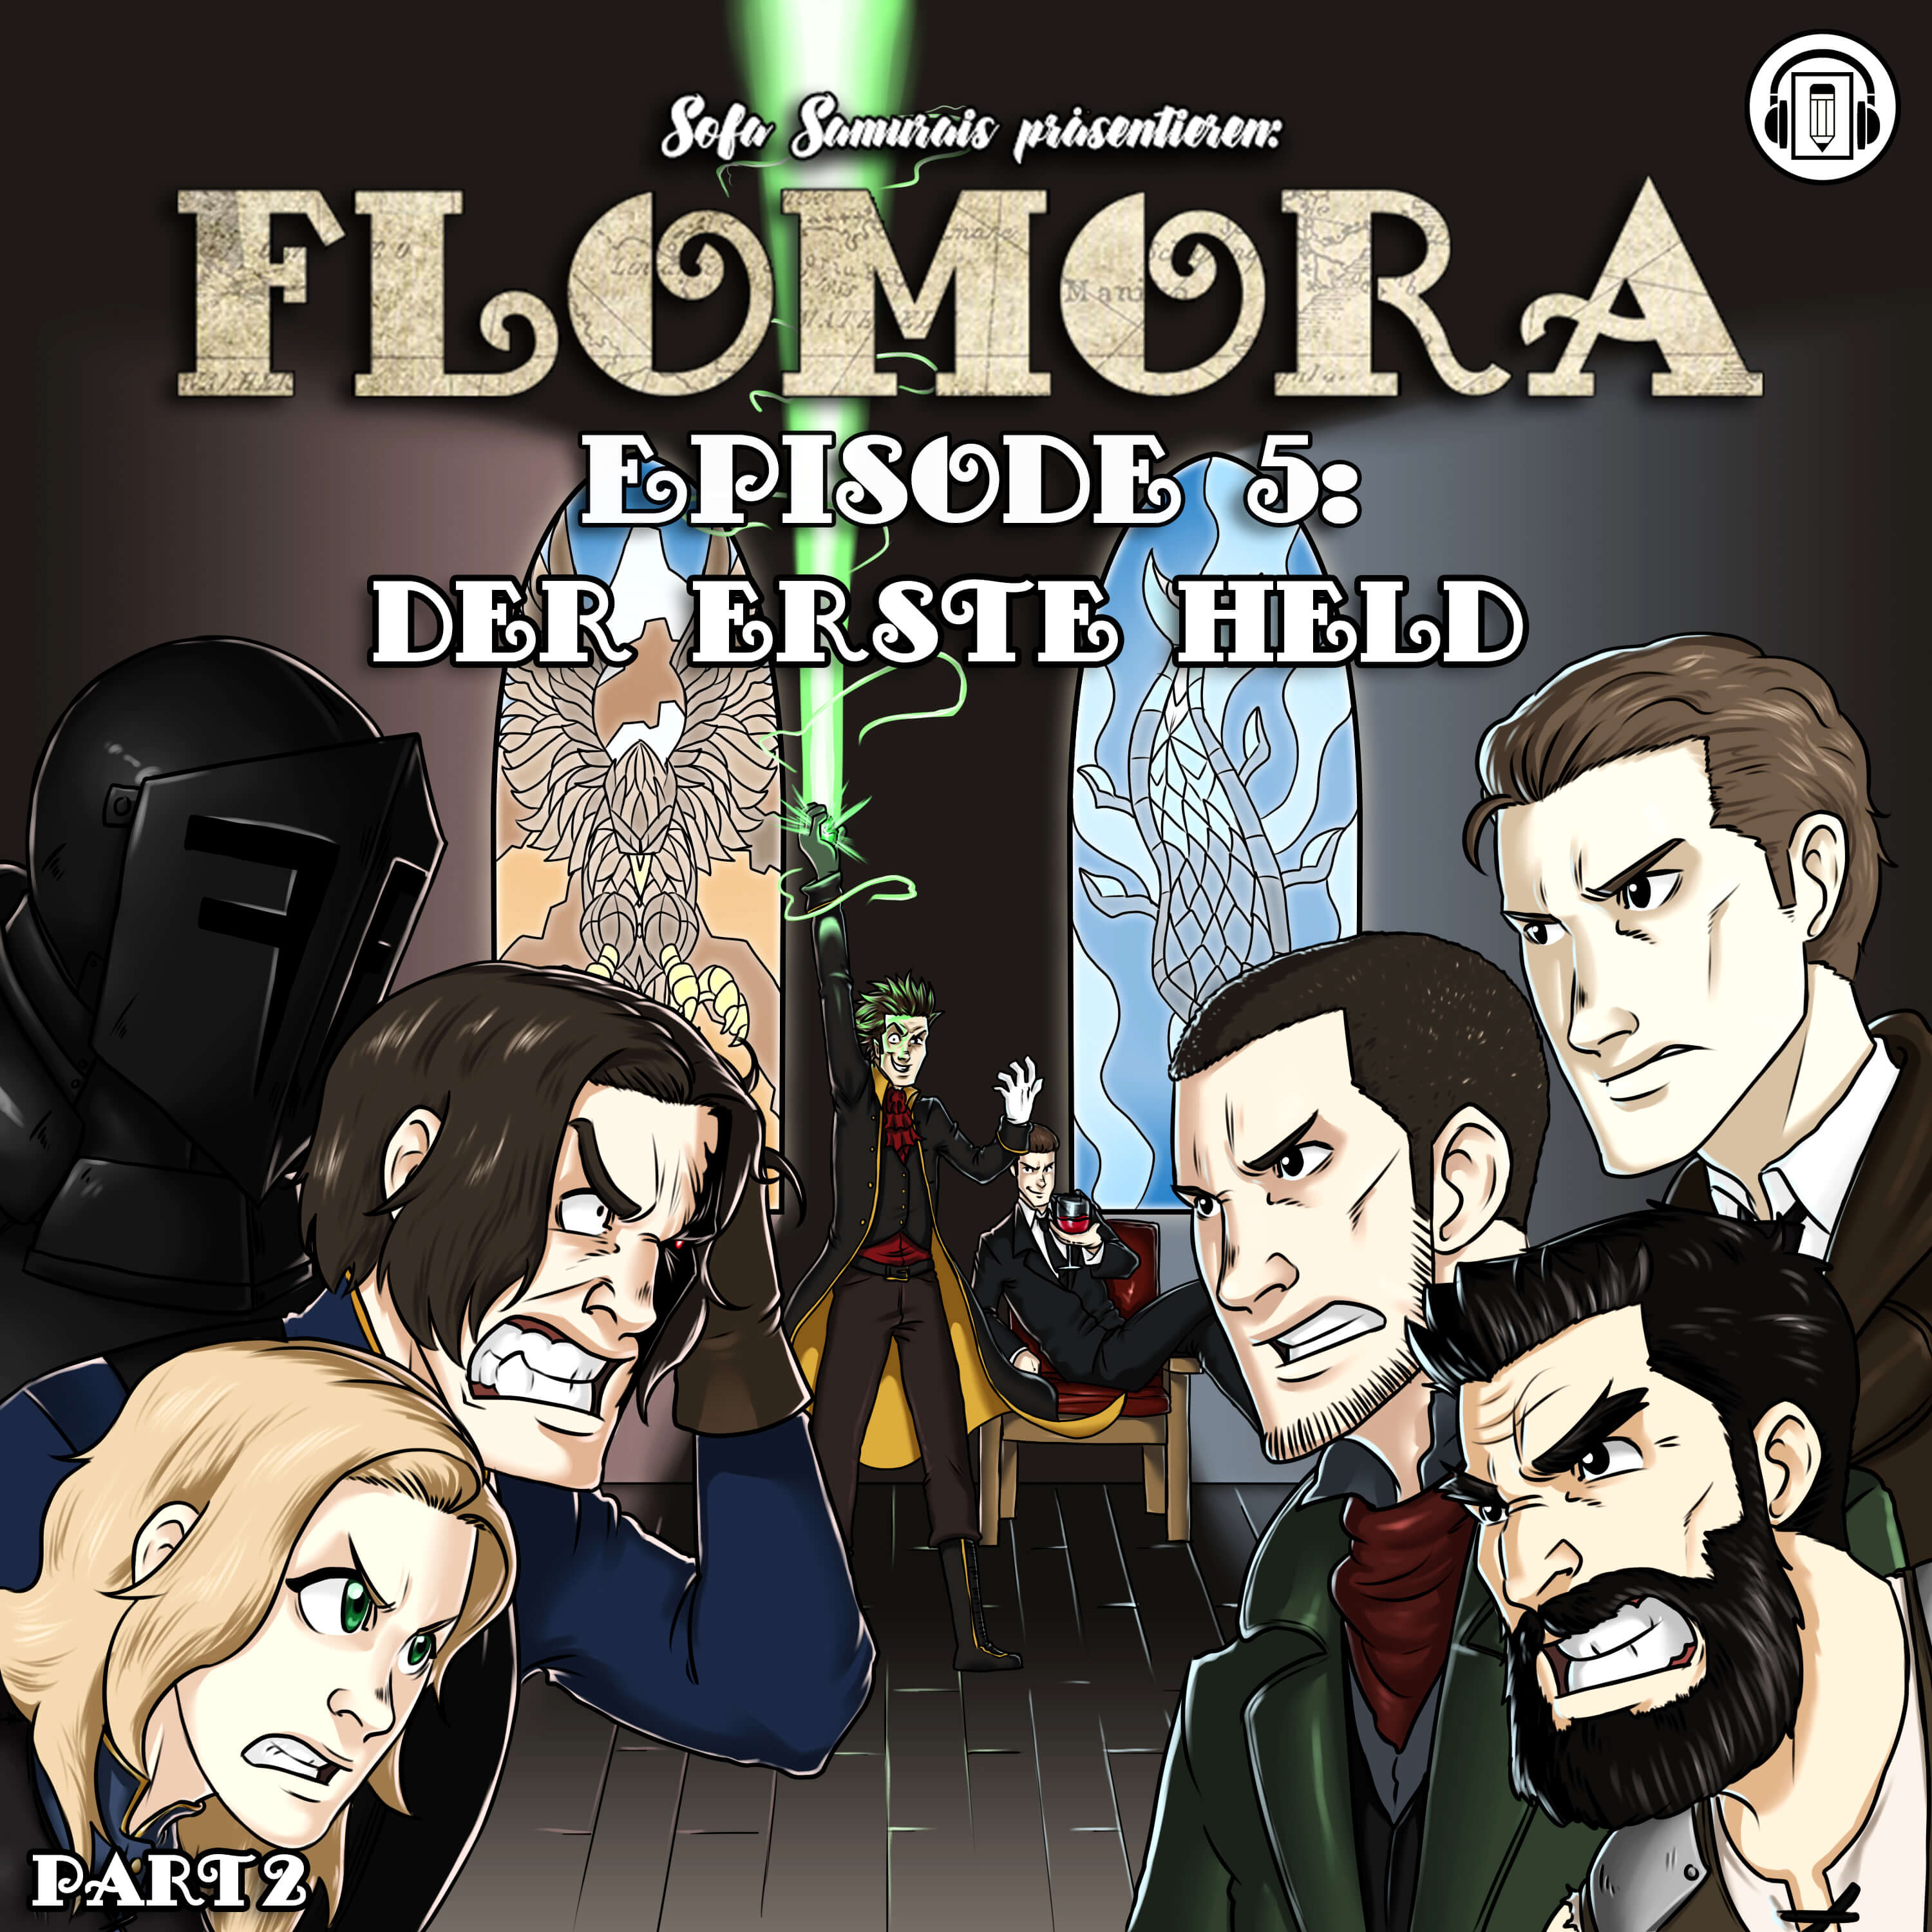 Flomora_Episodenbild_Ep5_p2 Compressed